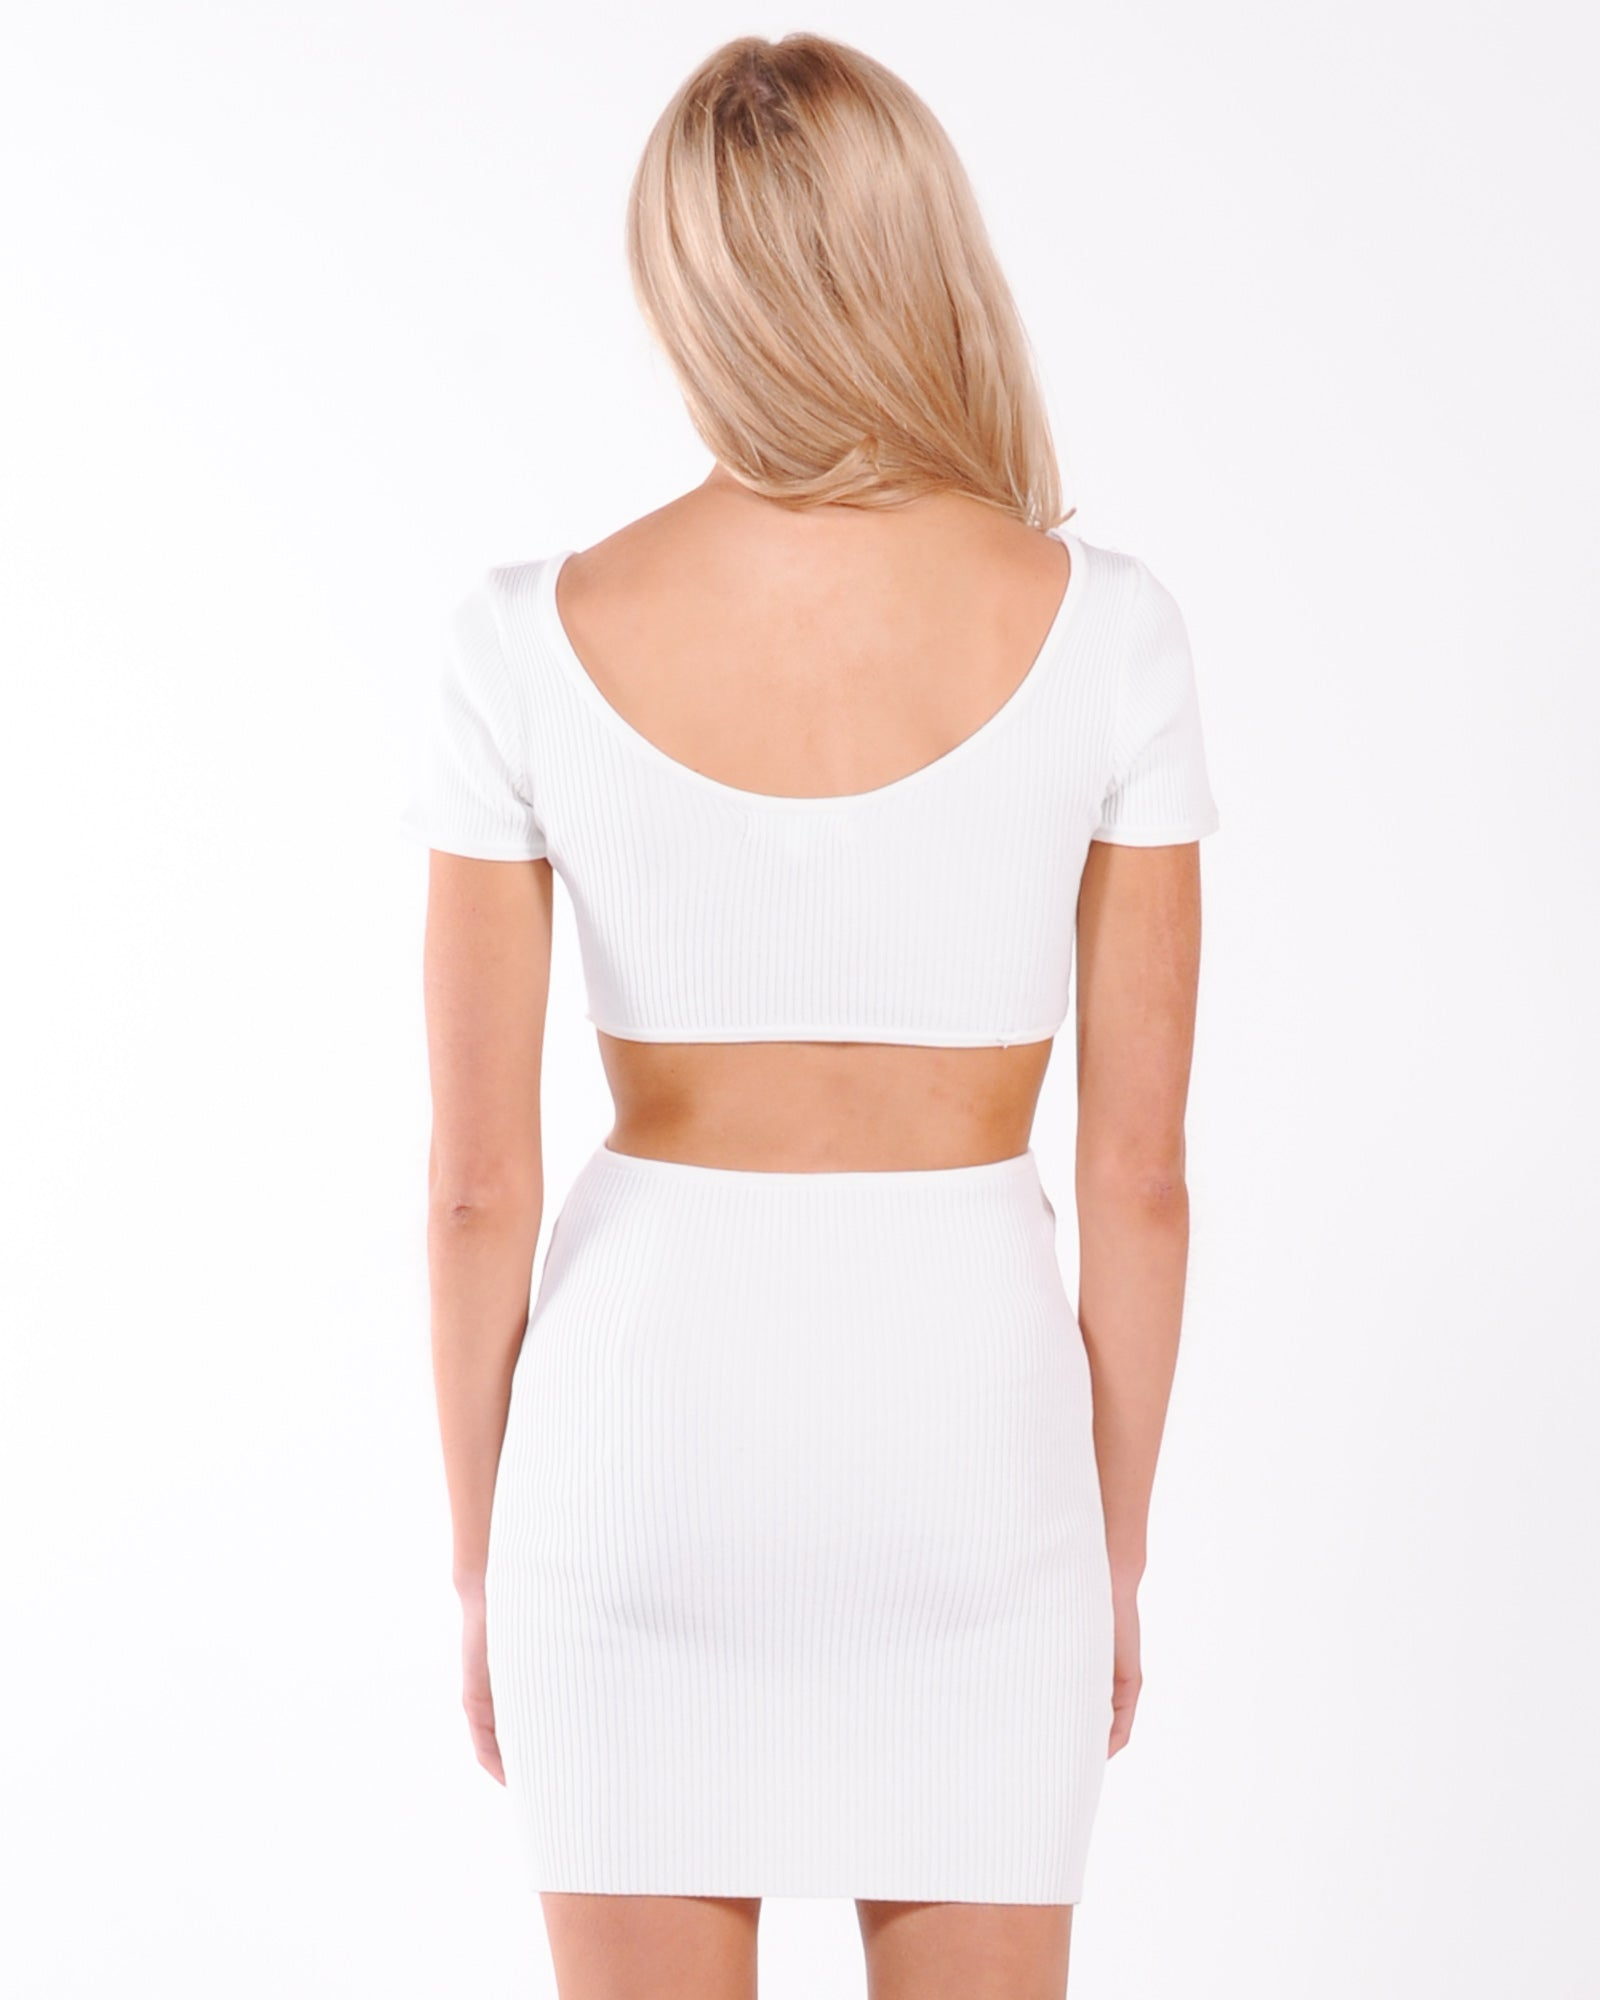 City Dancing Knit Dress - White